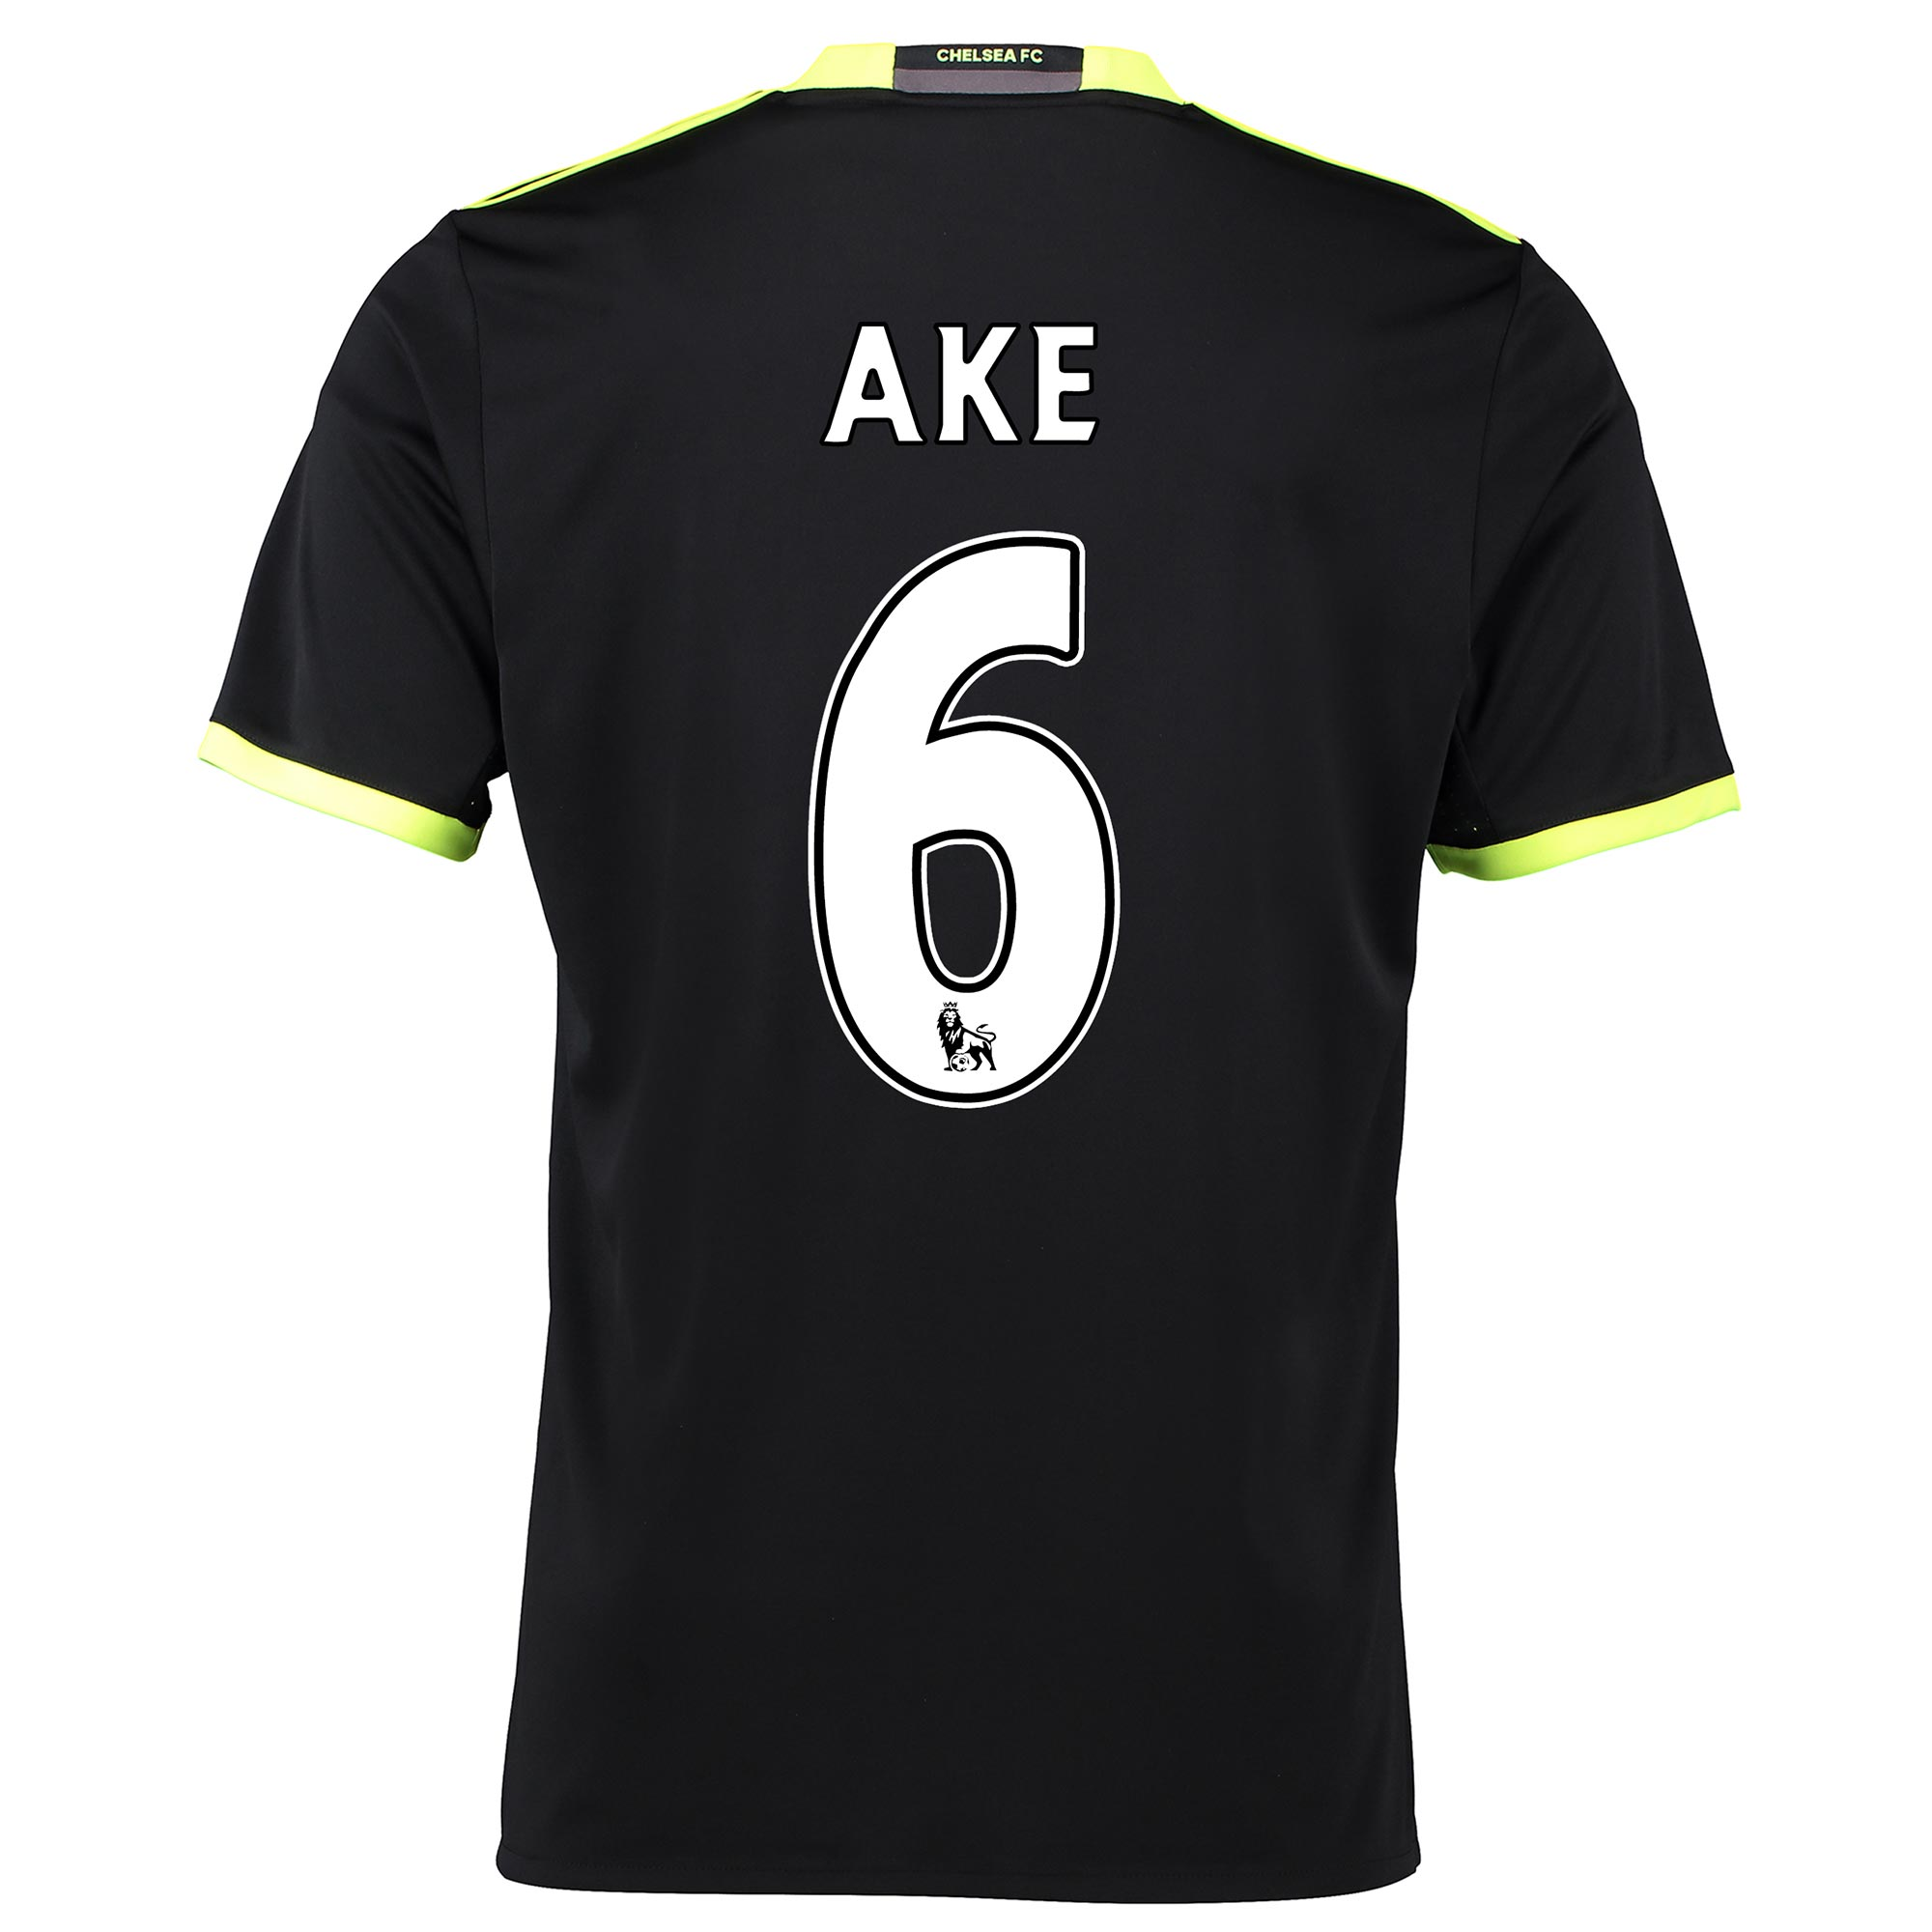 Chelsea Away Shirt 16-17 with Ake 6 printing